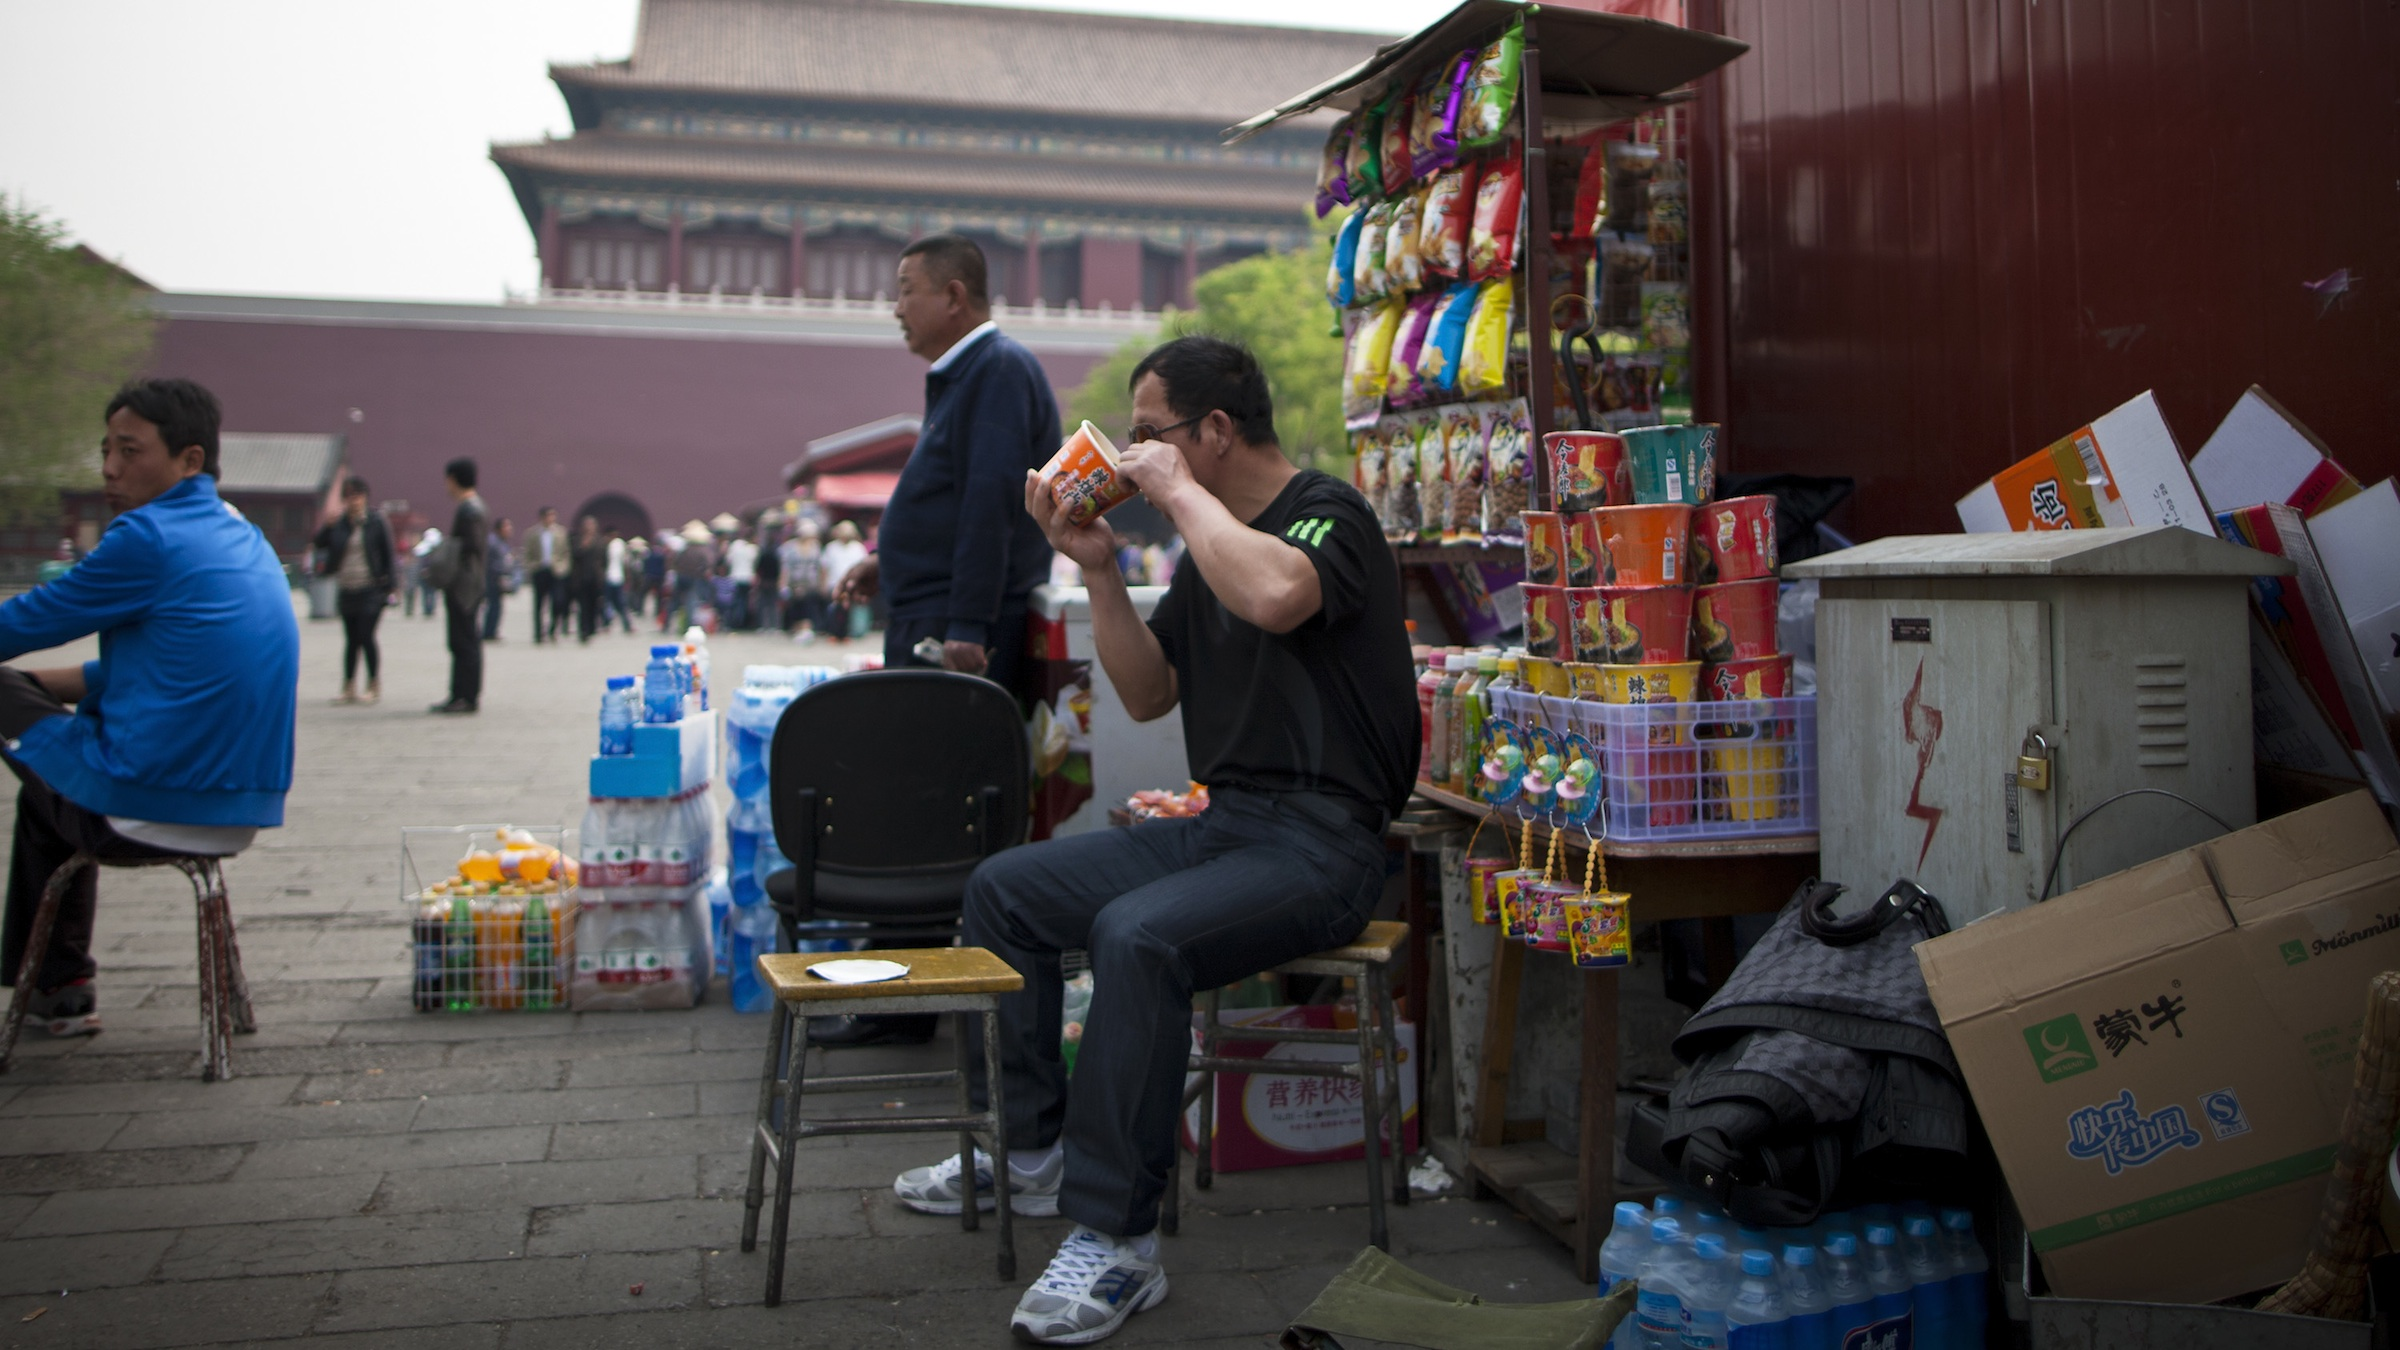 A Chinese man eats instant noodle at a store set up inside Forbidden City in Beijing, China Thursday, April 28, 2011. (AP Photo/Andy Wong)